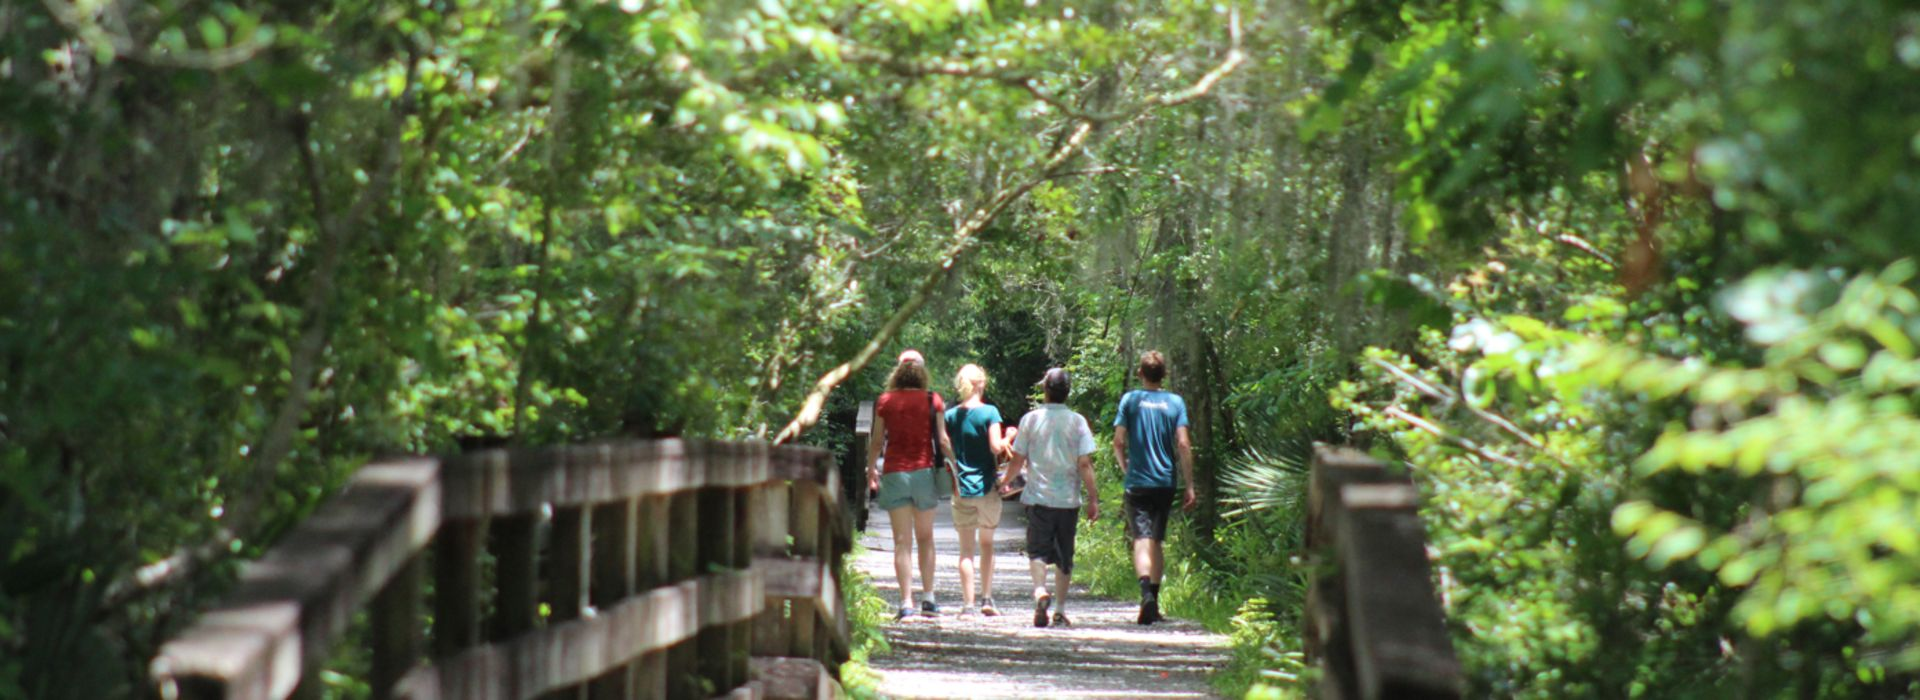 People walking along a Barataria Preserve trail in Marrero, LA